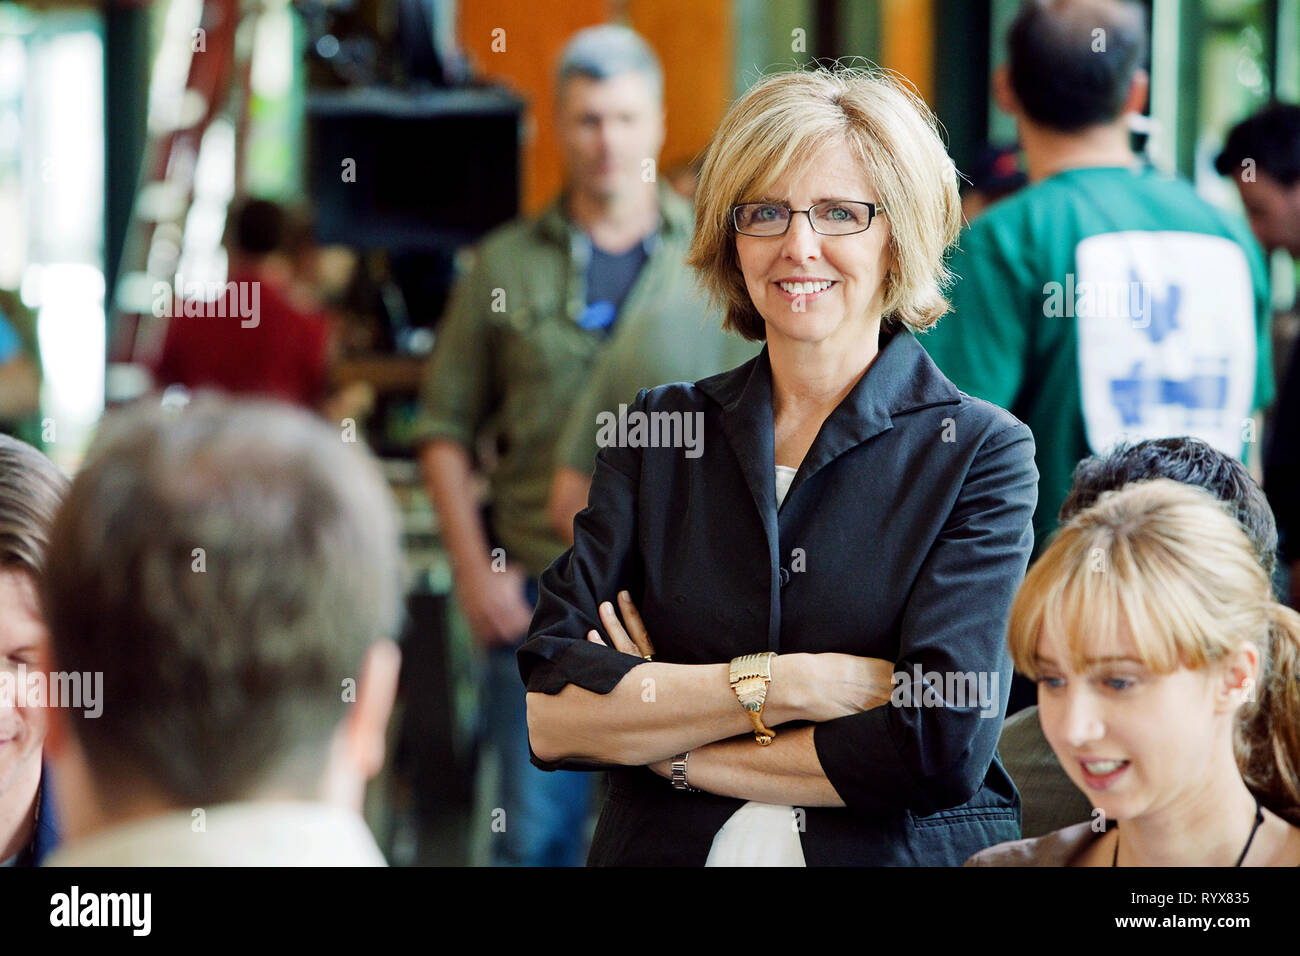 NANCY MEYERS, IT'S COMPLICATED, 2009 - Stock Image